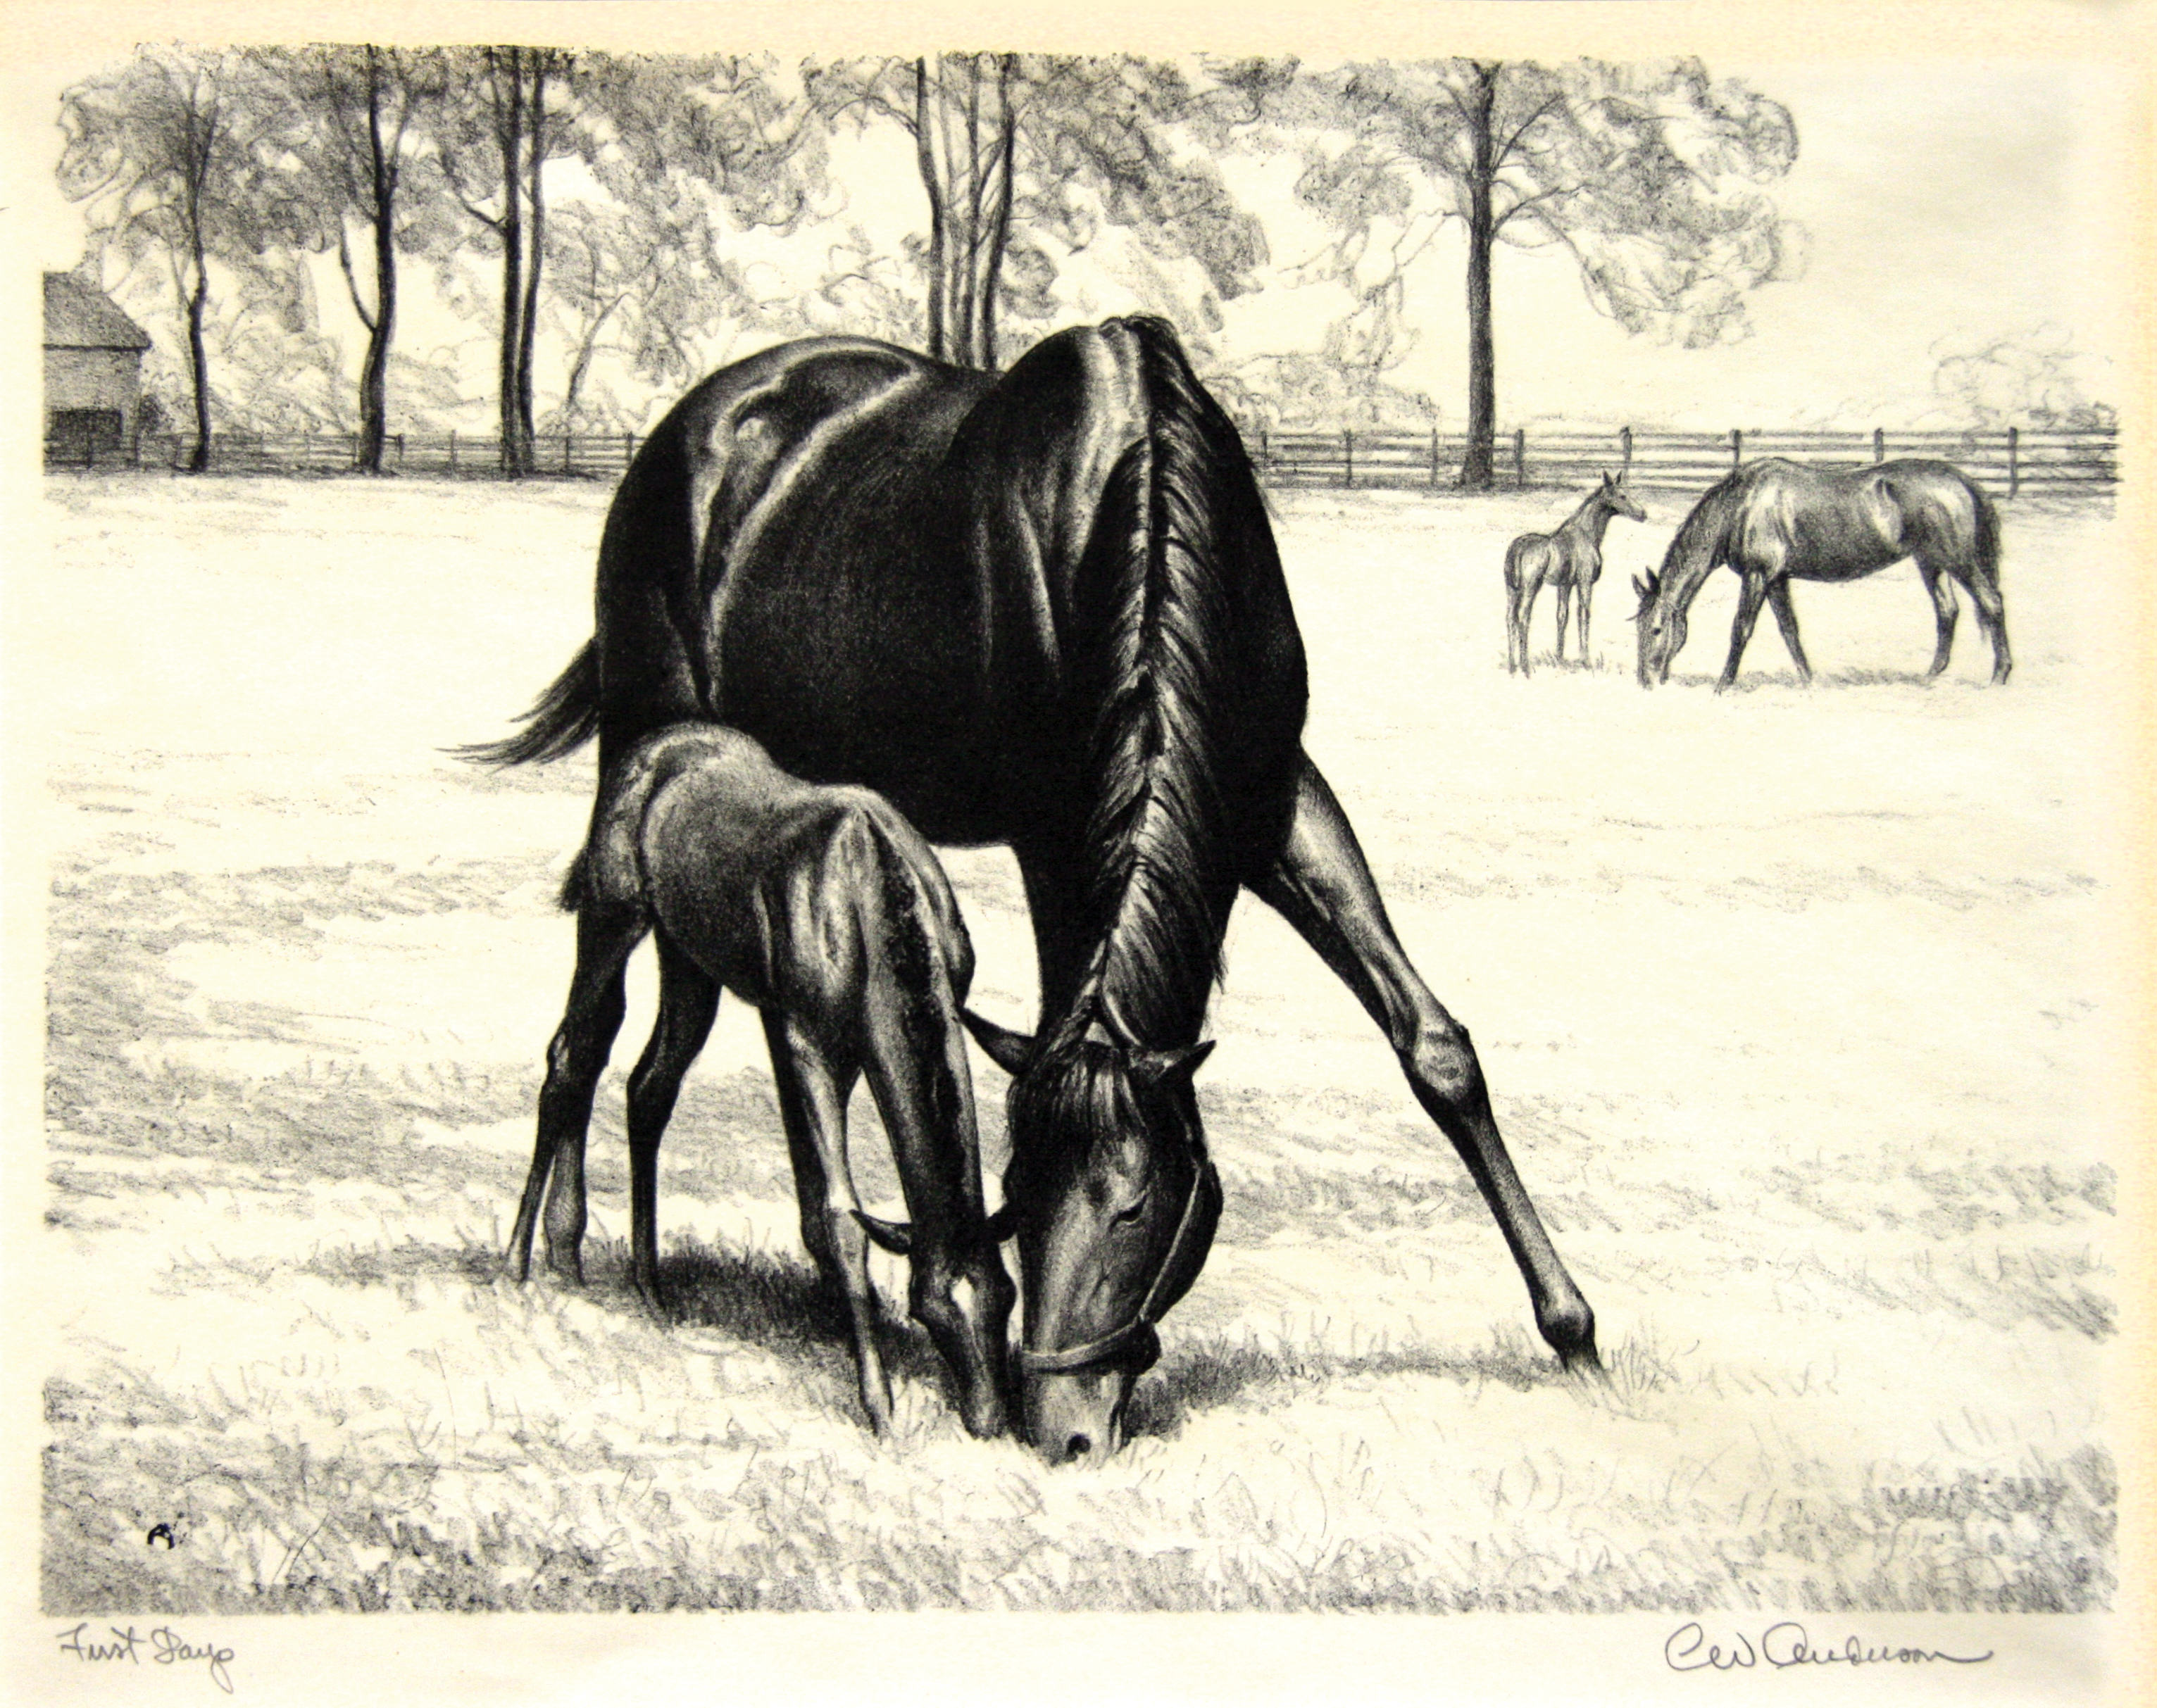 2005.005 | Clarence William Anderson | FIRST DAYS | lithograph | 8-1/2 x 11-1/2"